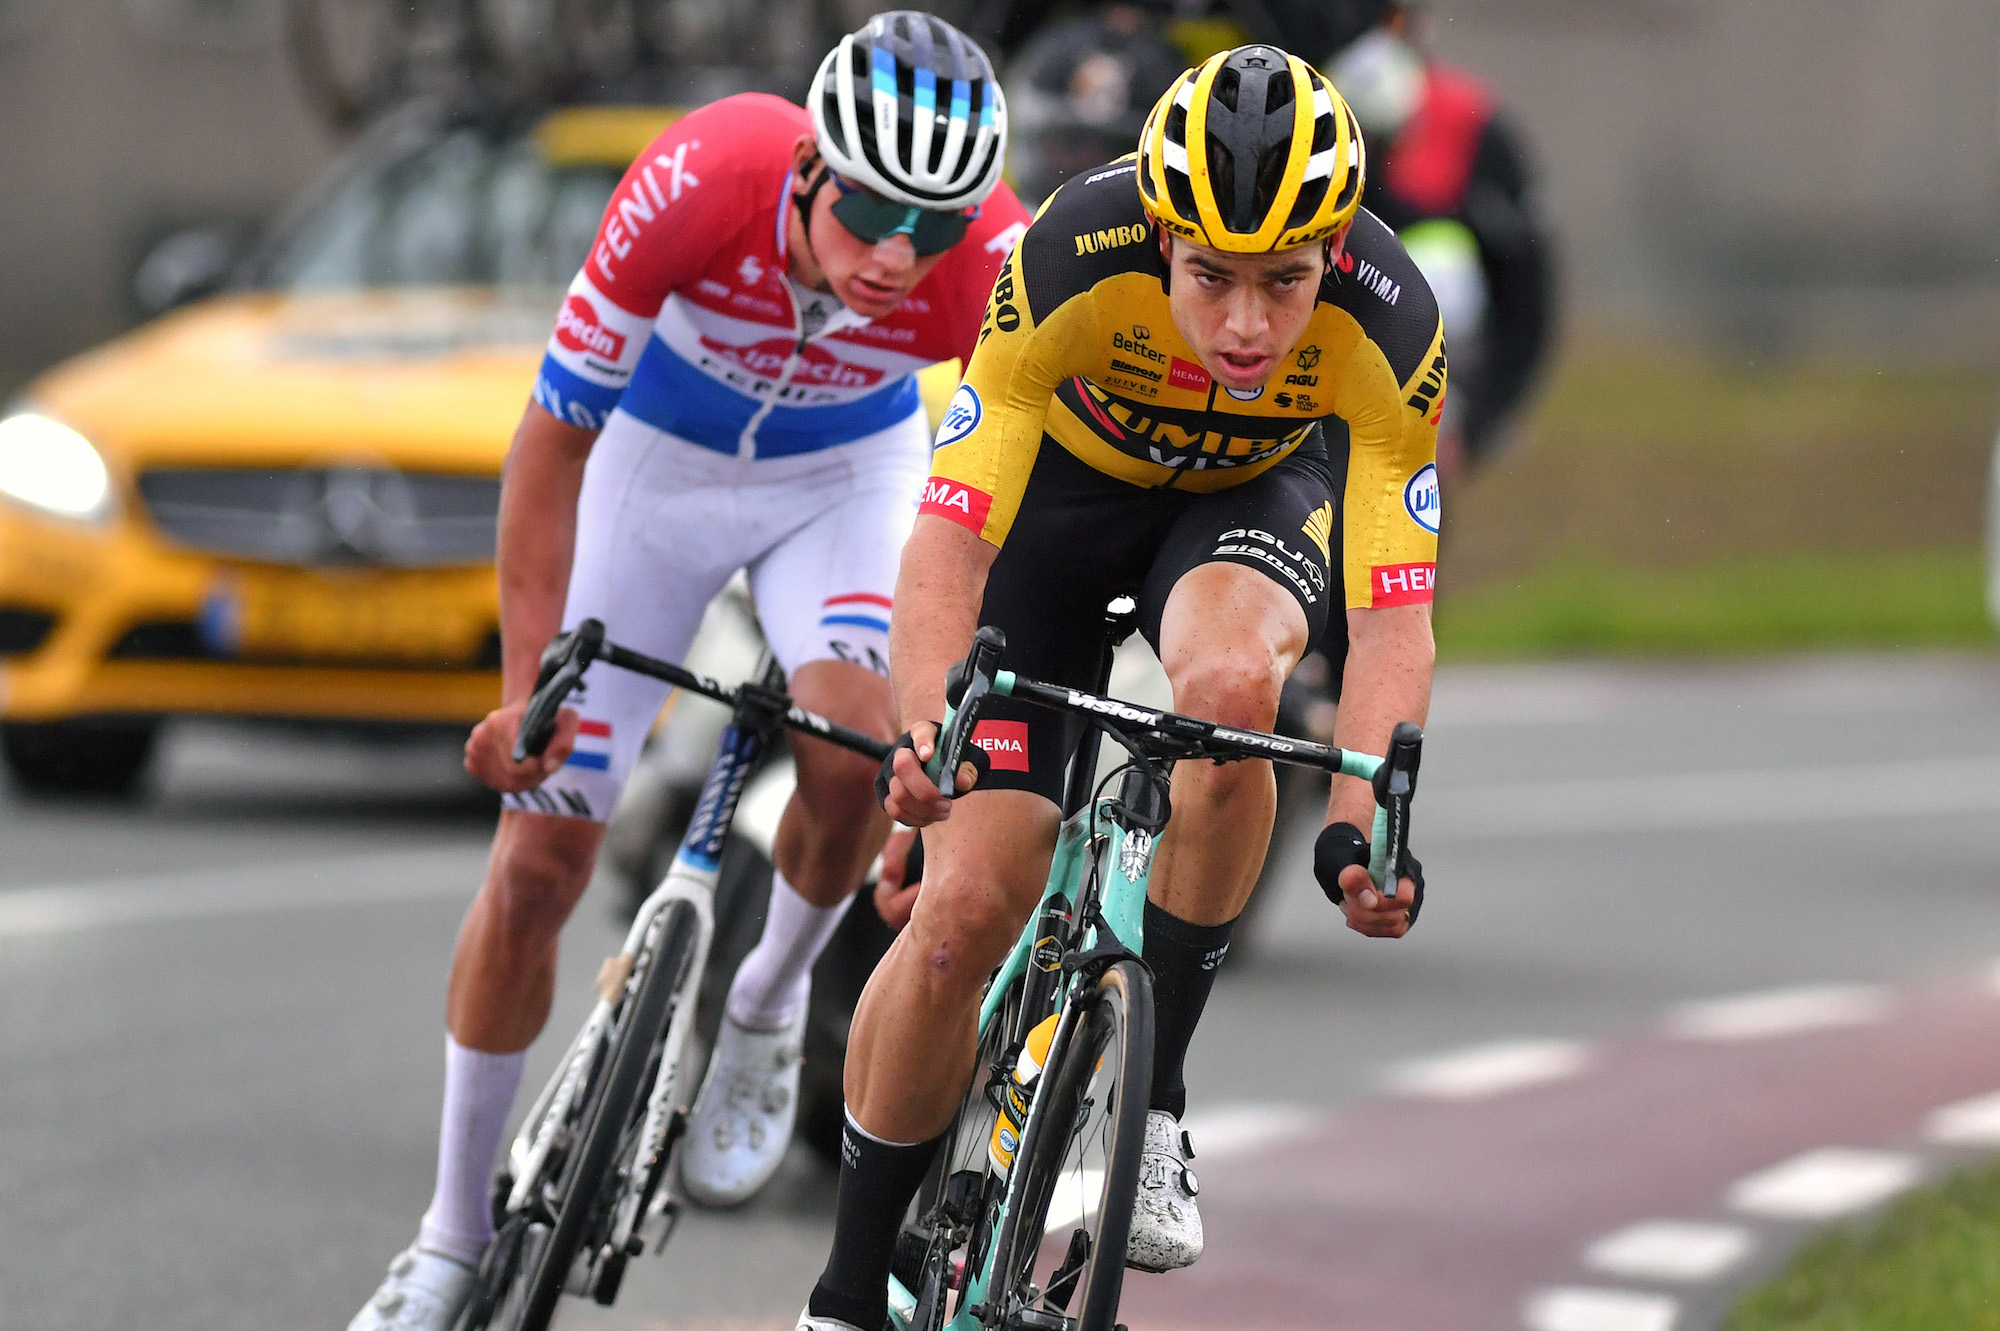 Philippe Gilbert: Van der Poel and Van Aert have no life except cycling,I don't know if they'll be able to race that long - Cycling Weekly